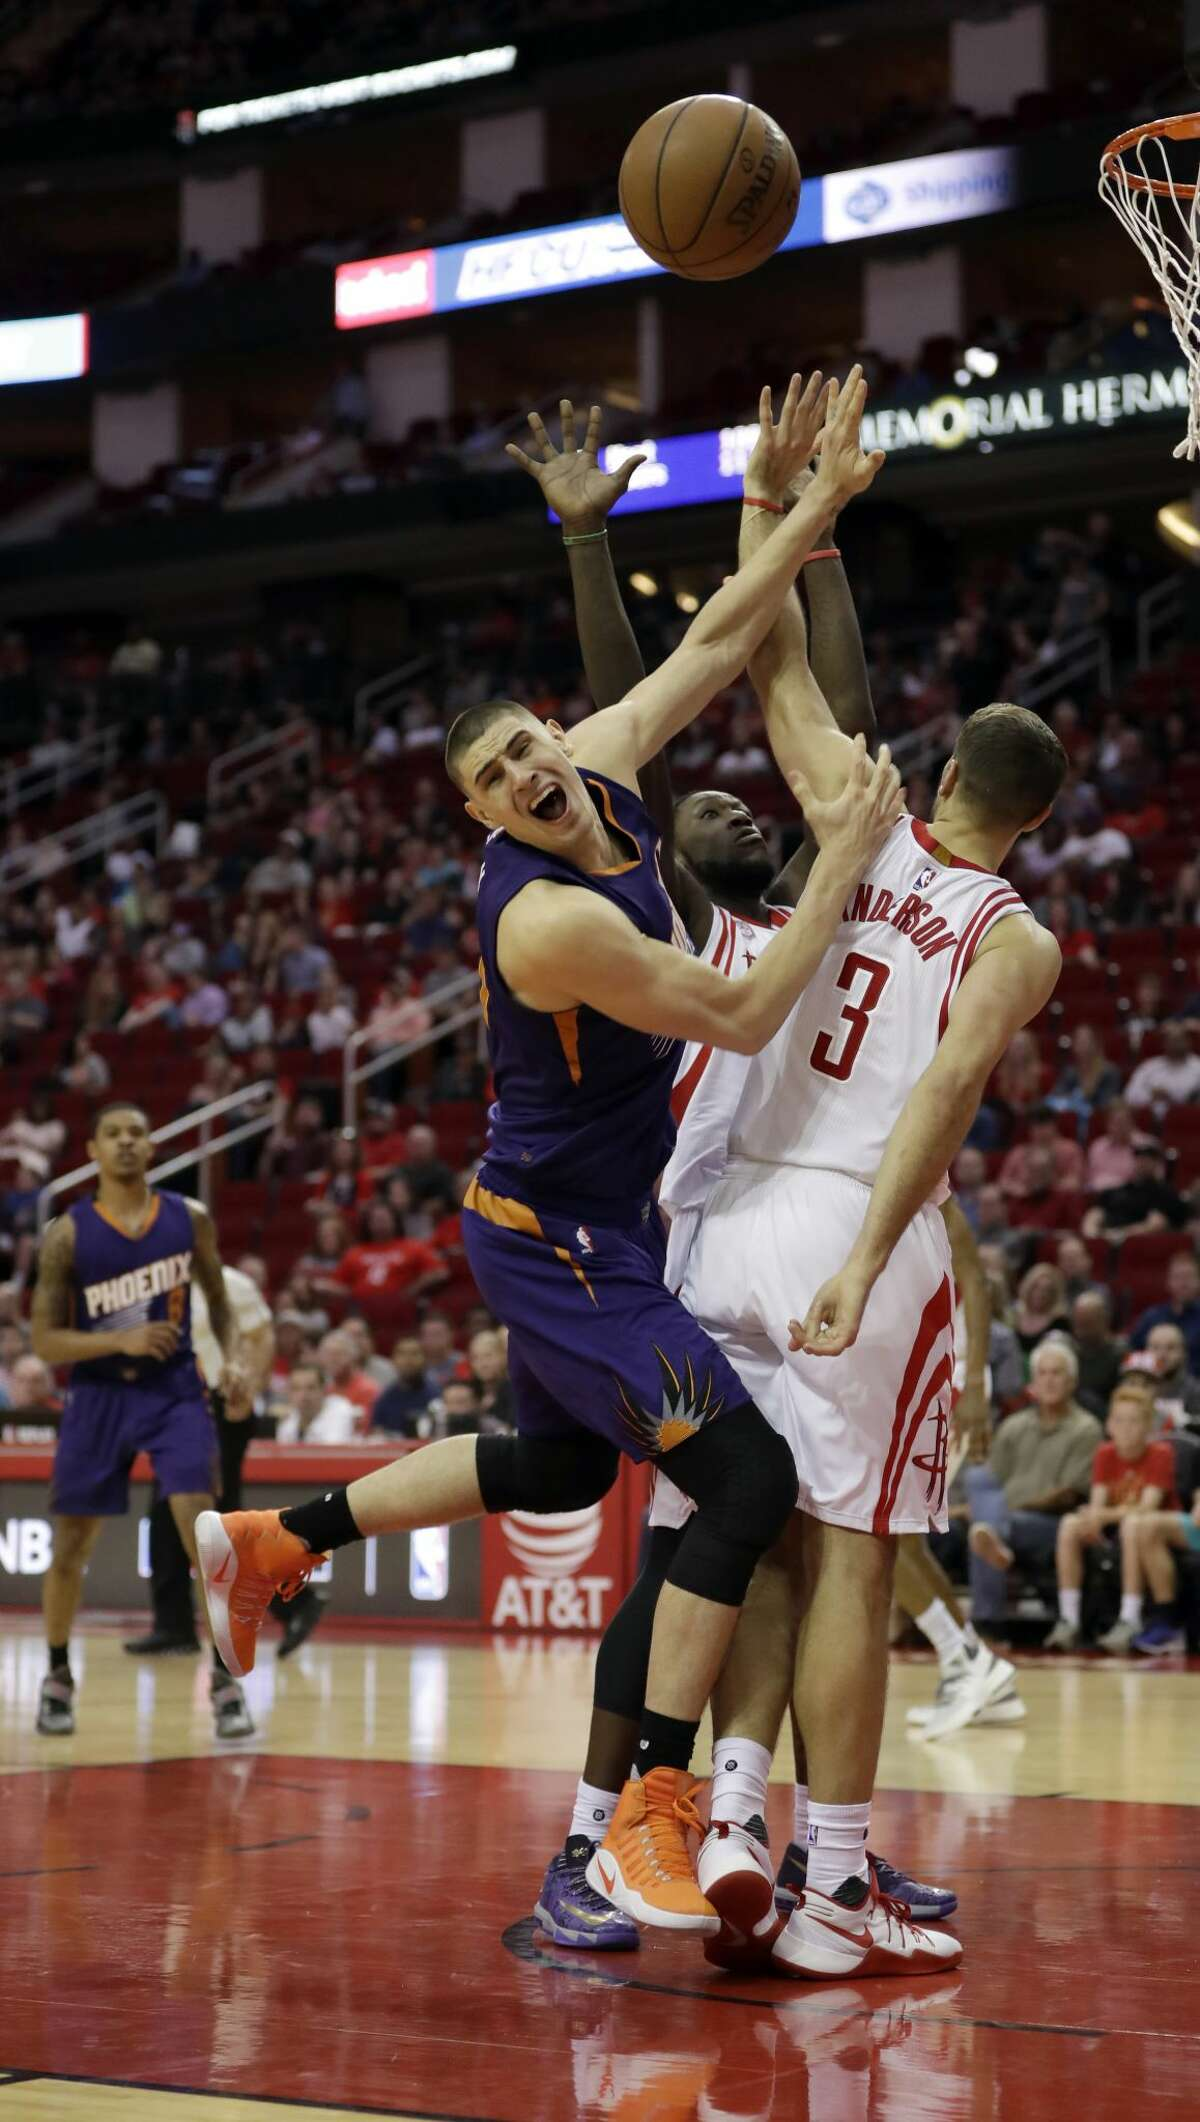 Phoenix Suns' Alex Len, left, is fouled by Houston Rockets' Ryan Anderson (3) during the second half of an NBA basketball game Saturday, Feb. 11, 2017, in Houston. The Rockets won 133-102. (AP Photo/David J. Phillip)